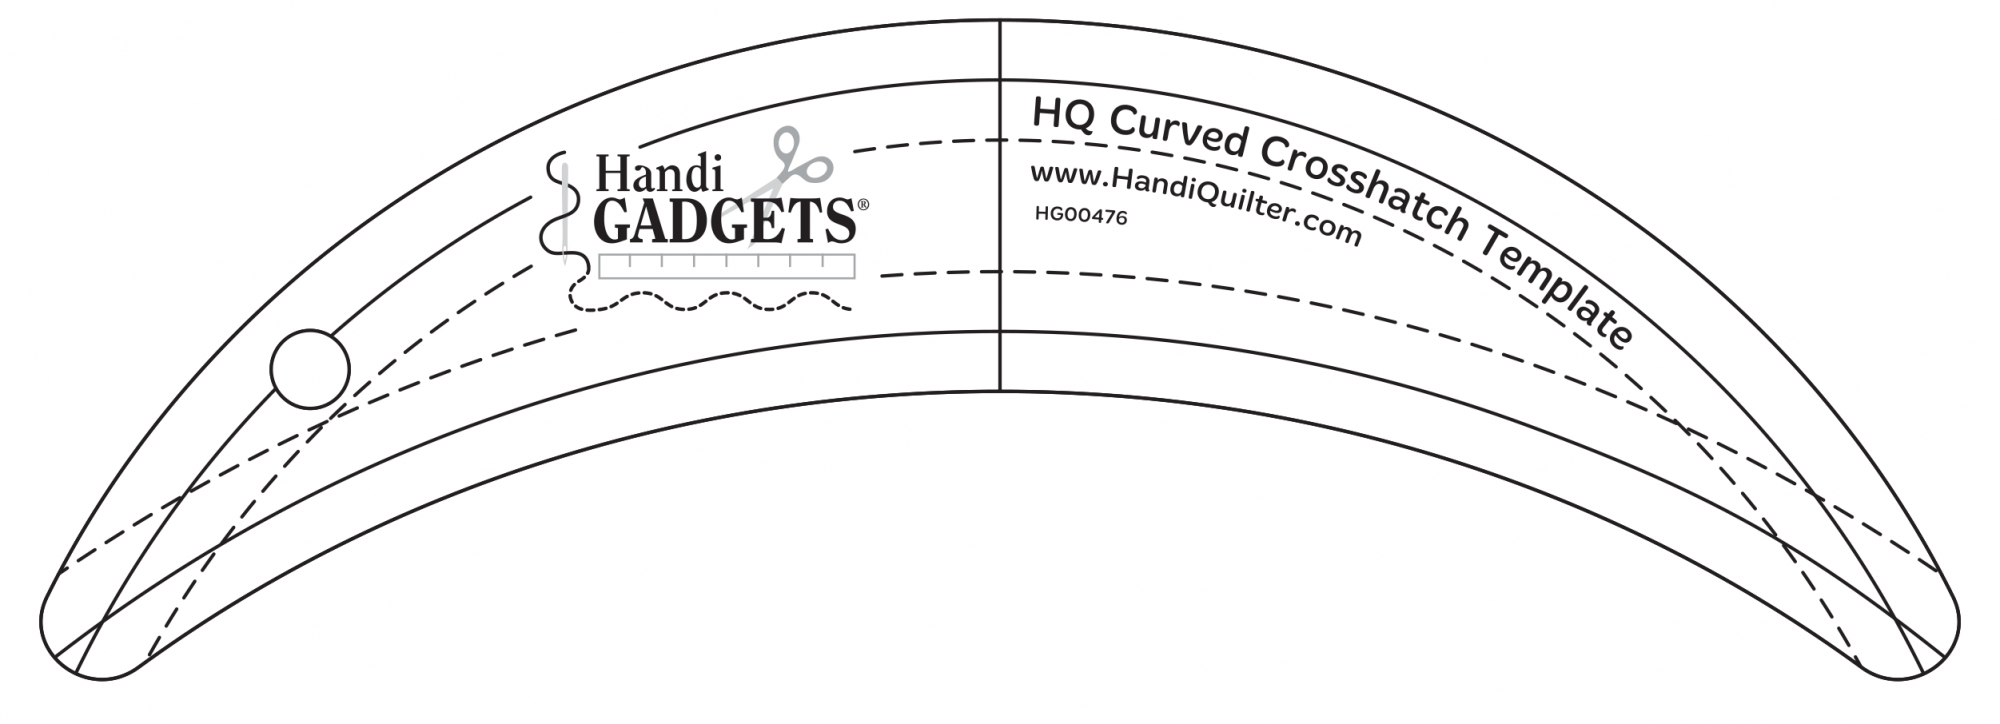 HQ Curved Crosshatch Template